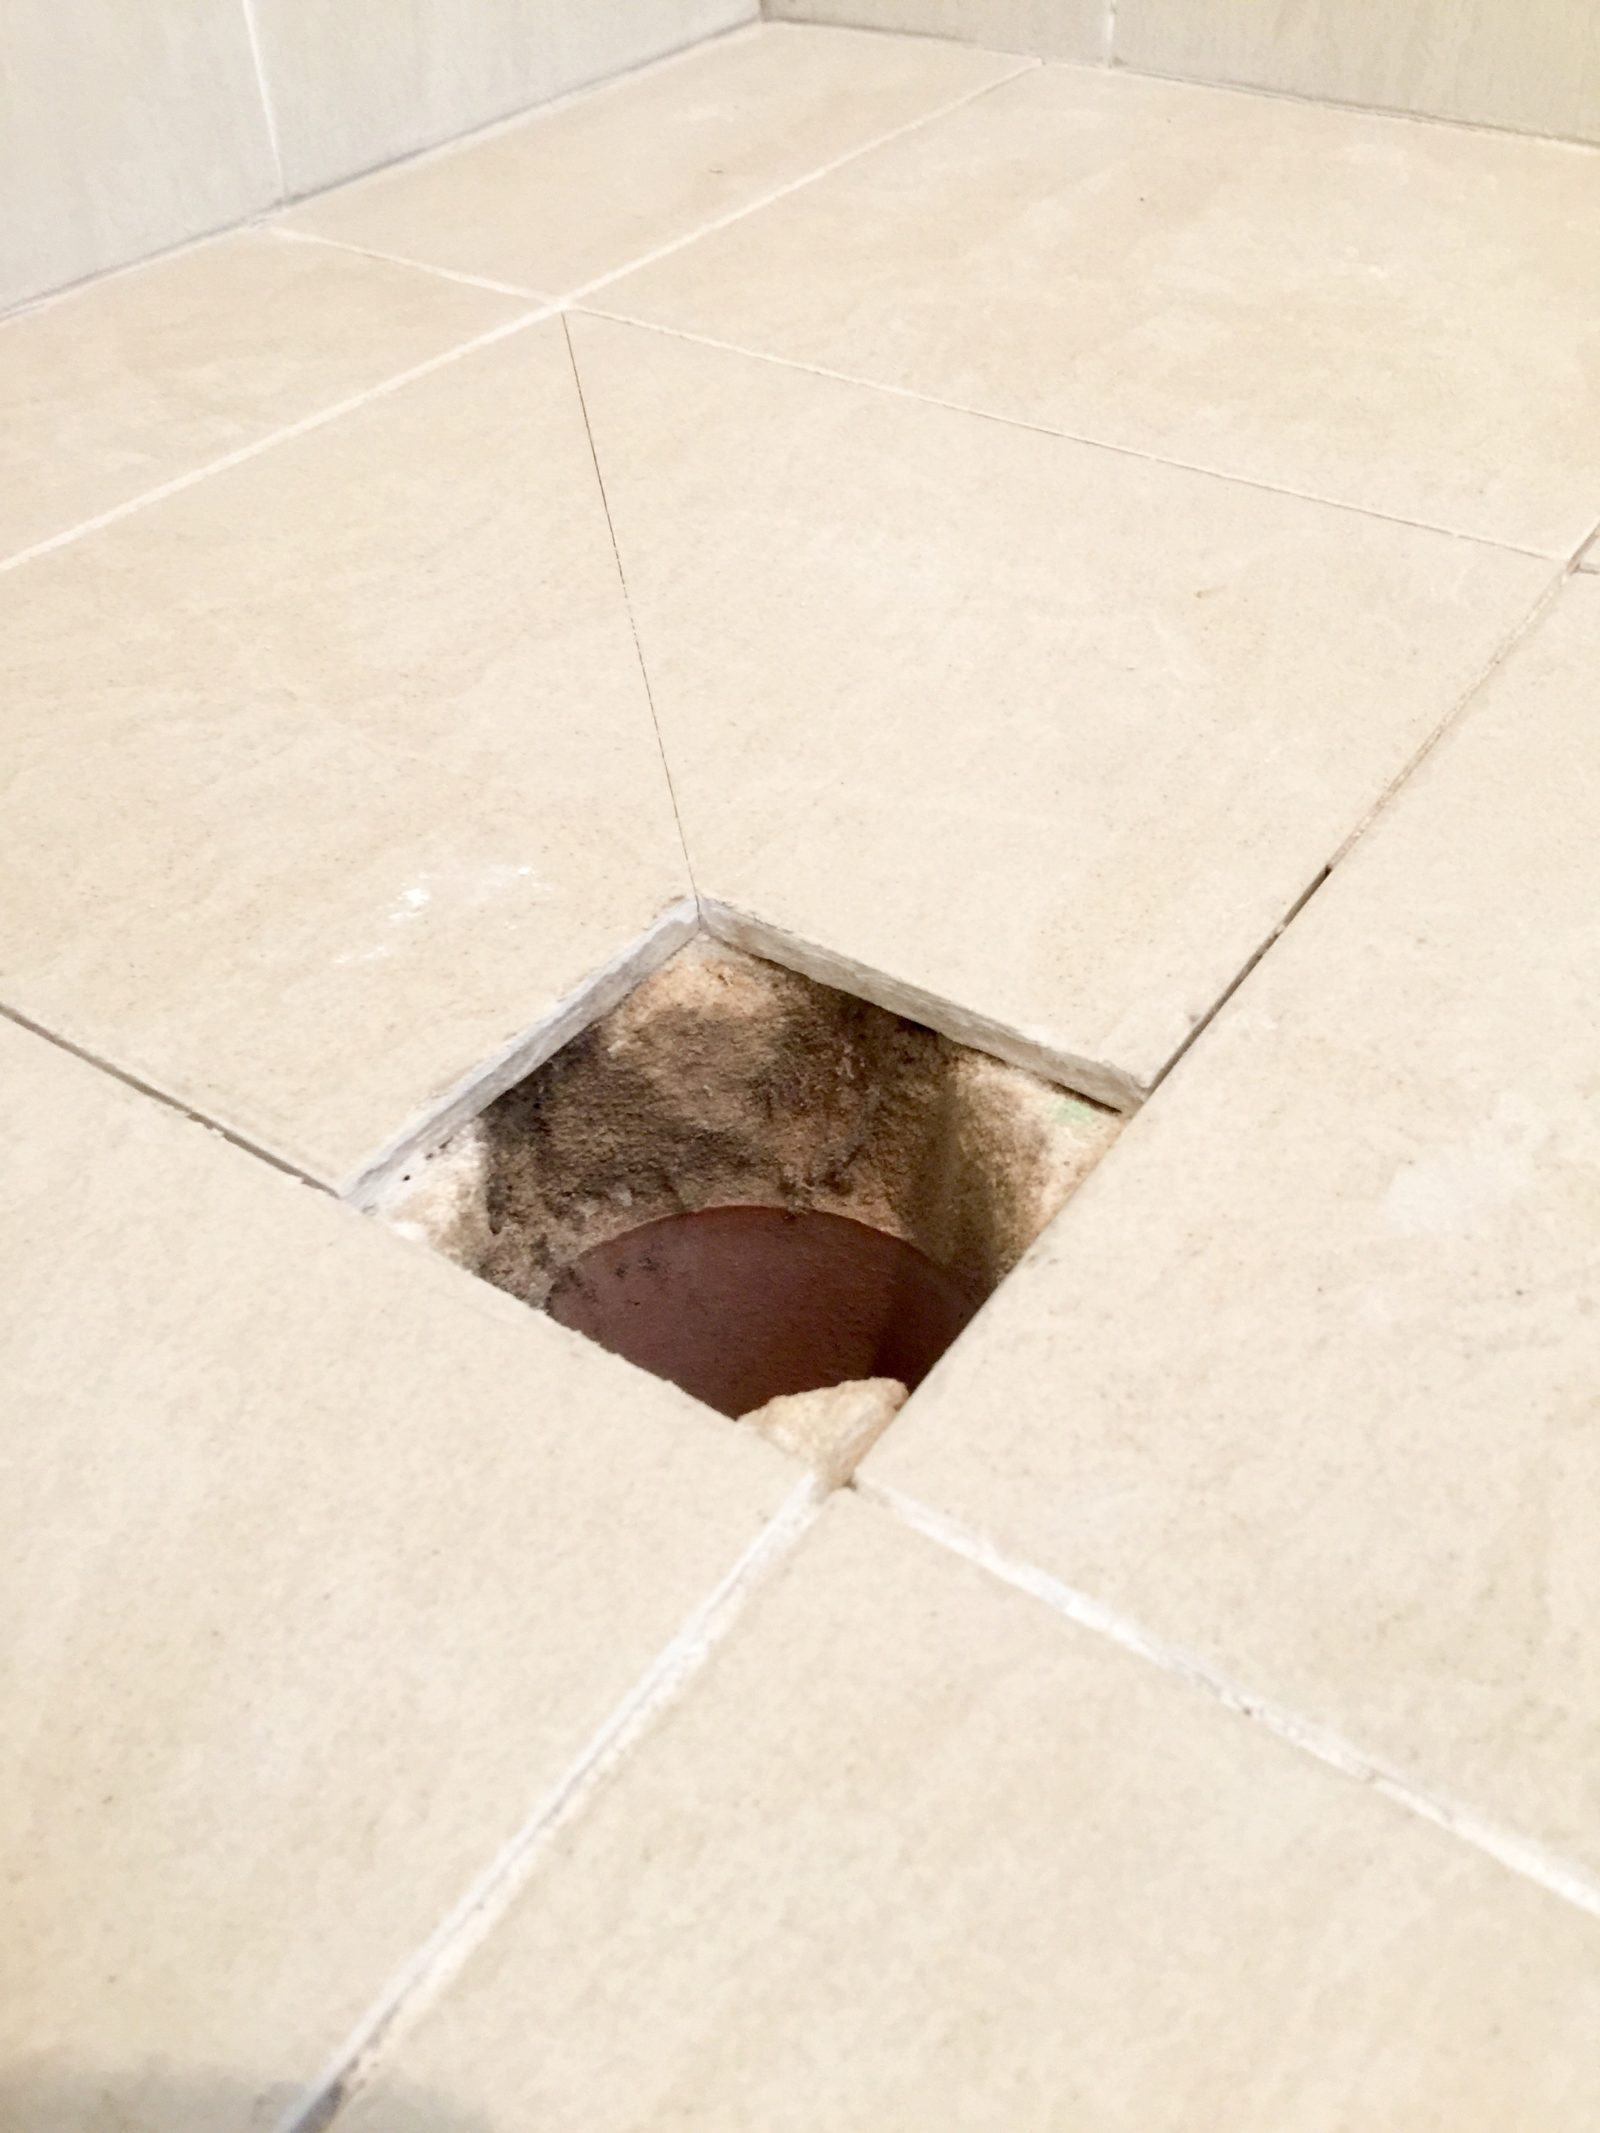 Floor waste removed showing exposed sand and cement screed which gets saturated from shower water